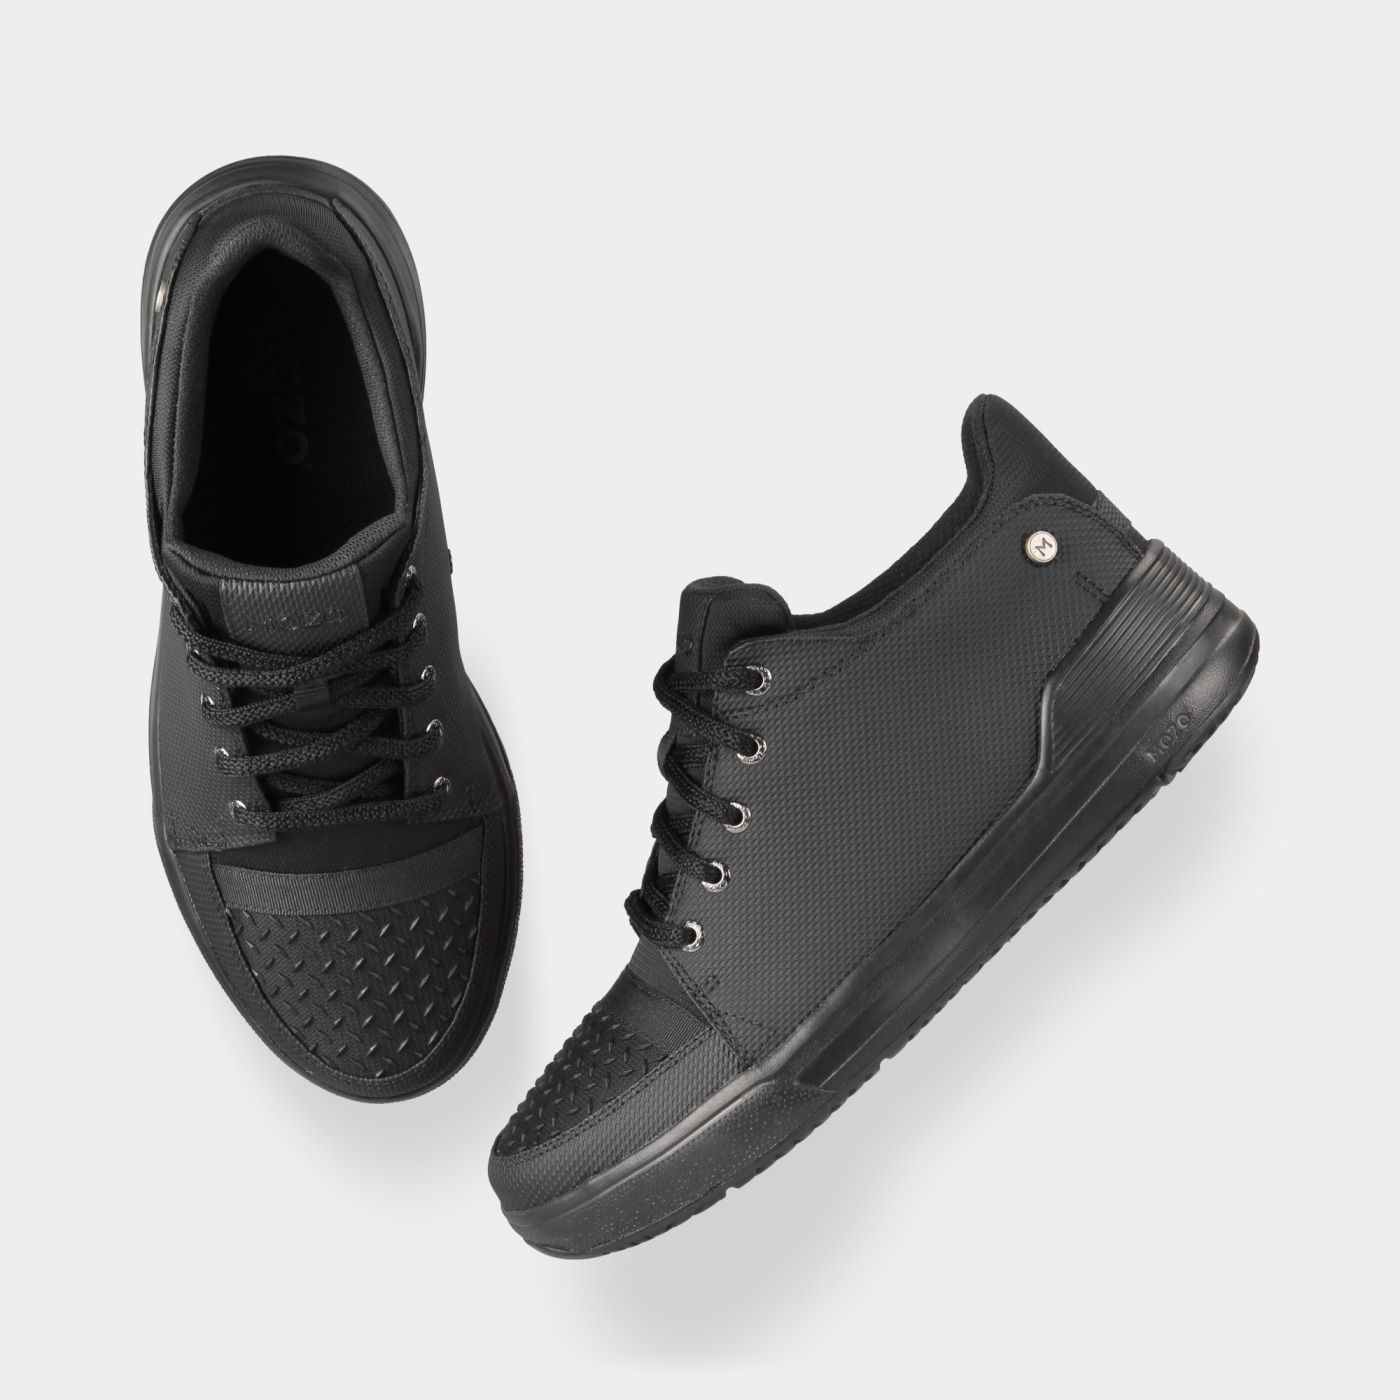 shoes for work in the kitchen foldable cart mozo 39s gallant is a slip resistant shoe with